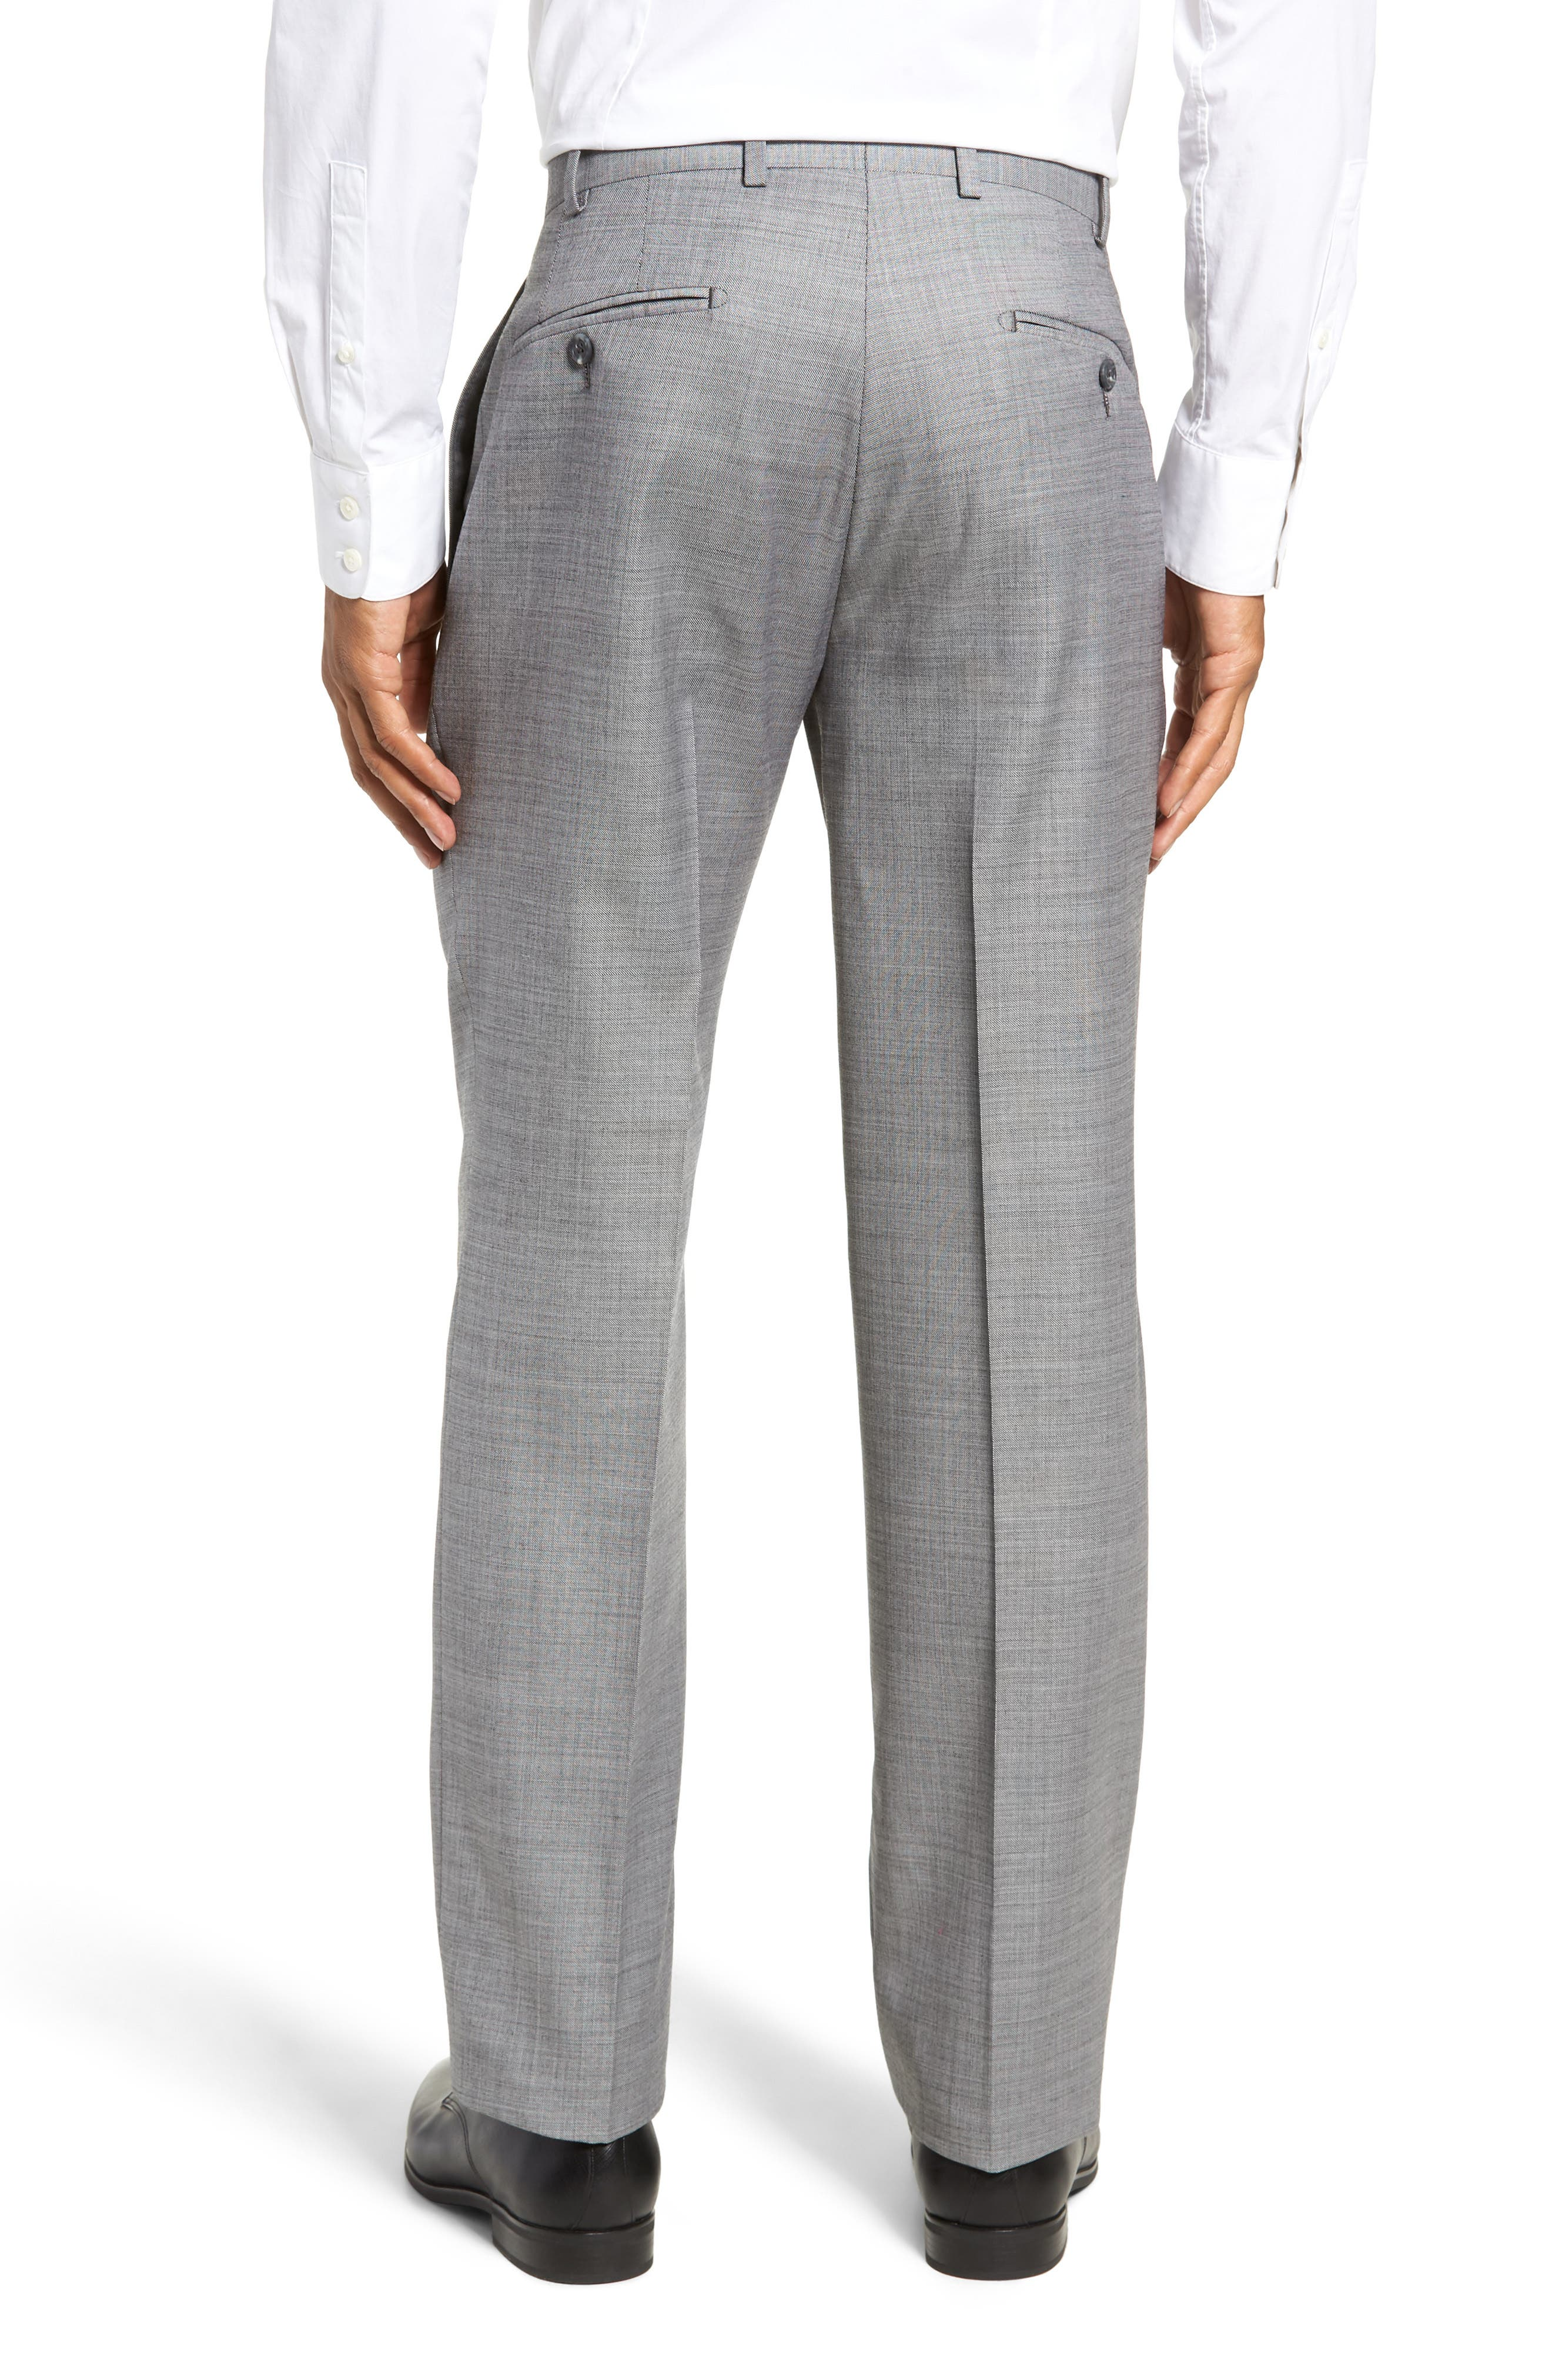 JOHN W. NORDSTROM<SUP>®</SUP>, Traditional Fit Flat Front Solid Wool Trousers, Alternate thumbnail 2, color, GREY PEARL